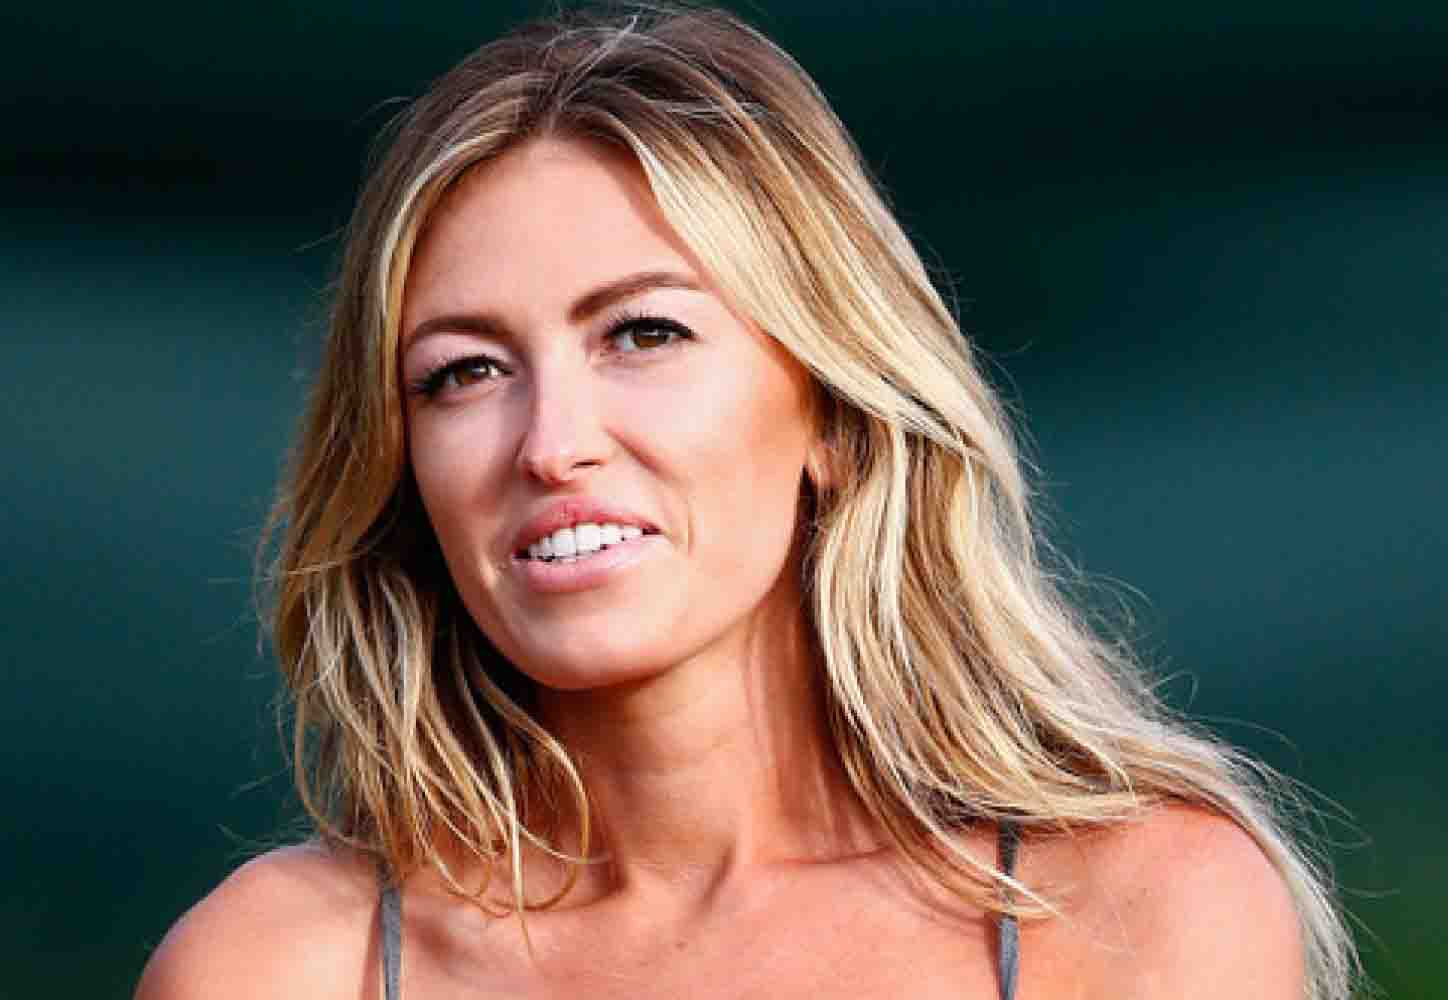 Paulina Gretzky - Bio, Birthday, Height, Weight, Boyfriend ...